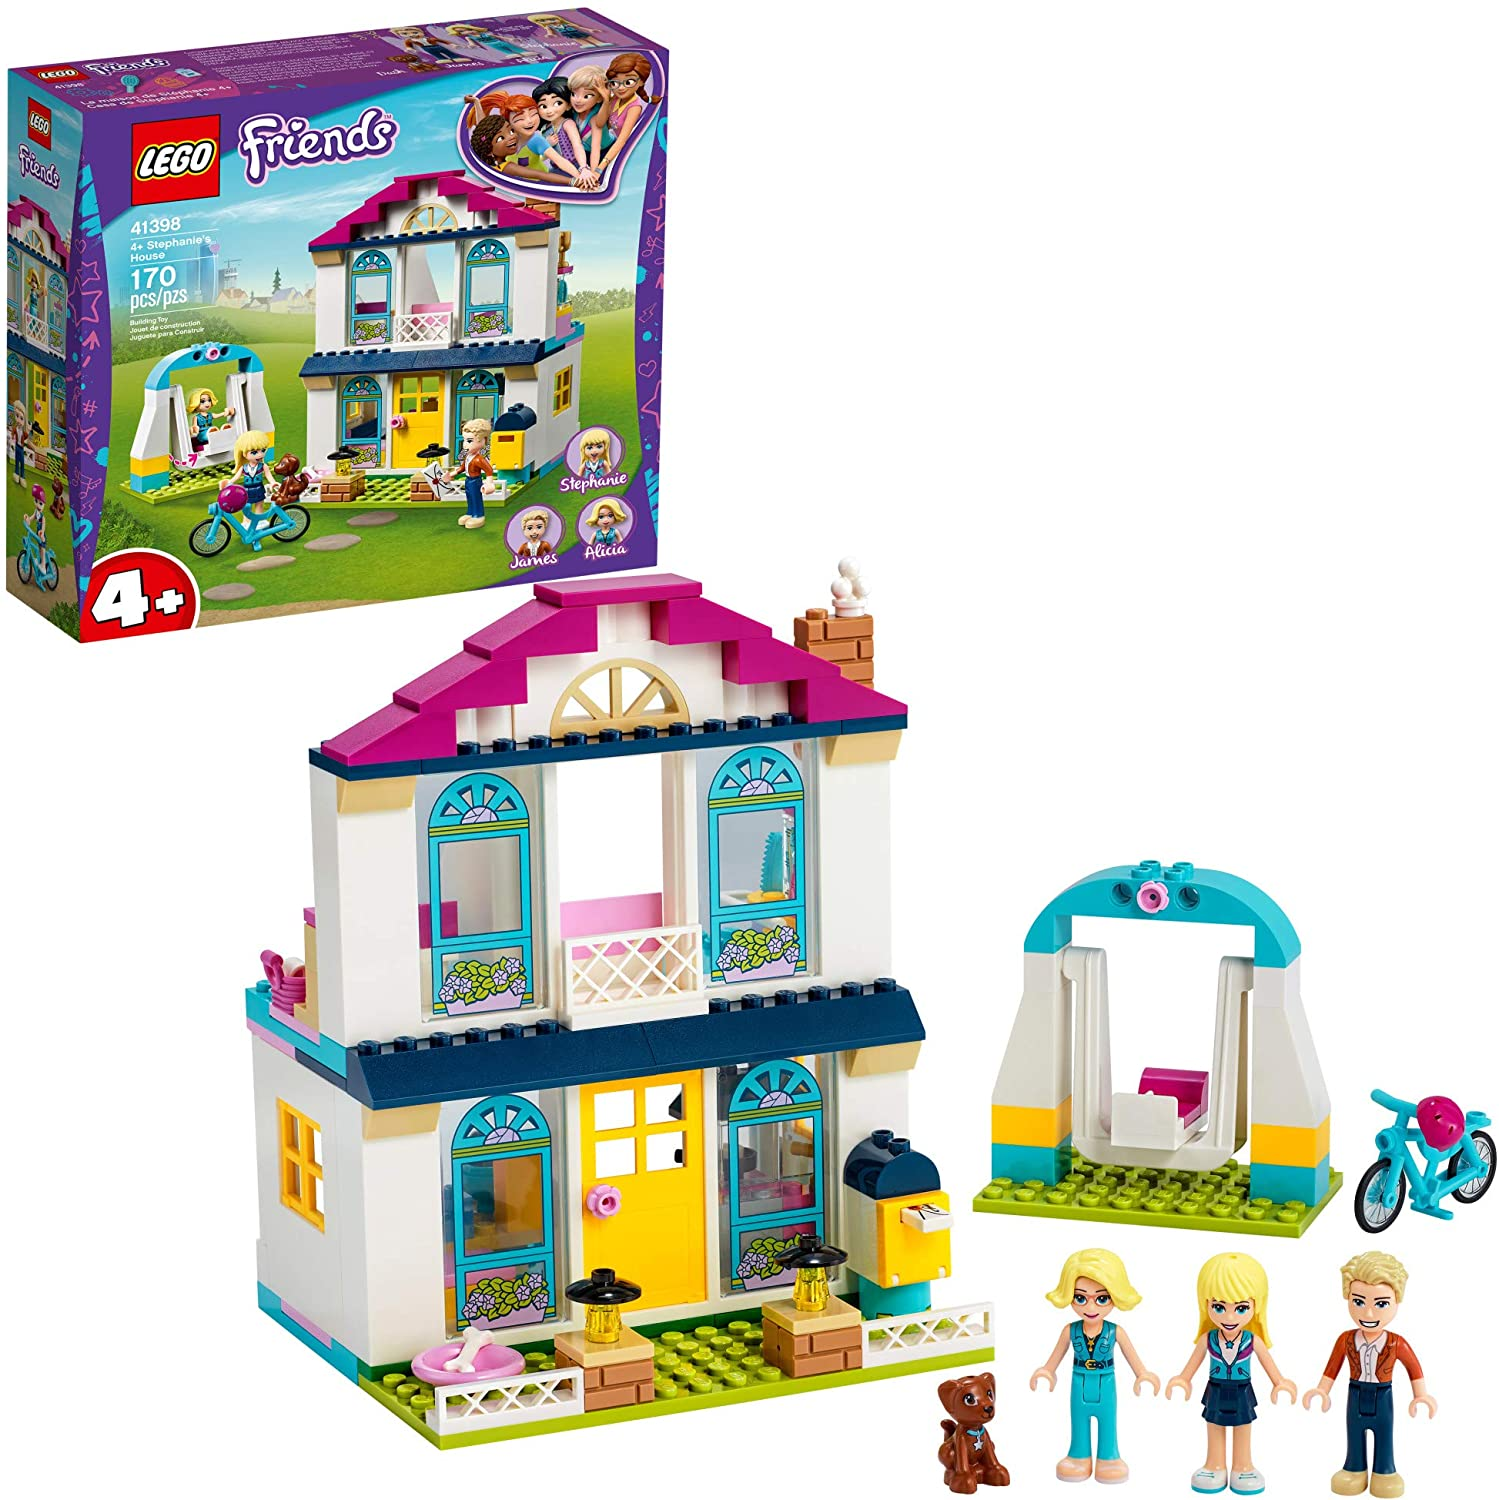 LEGO Friends 4+ Stephanie's House 41398 Mini-Doll's House, Lets Kids Role-Play Family Life Friends Stephanie, Alicia and James, New 2020 (170 Pieces)